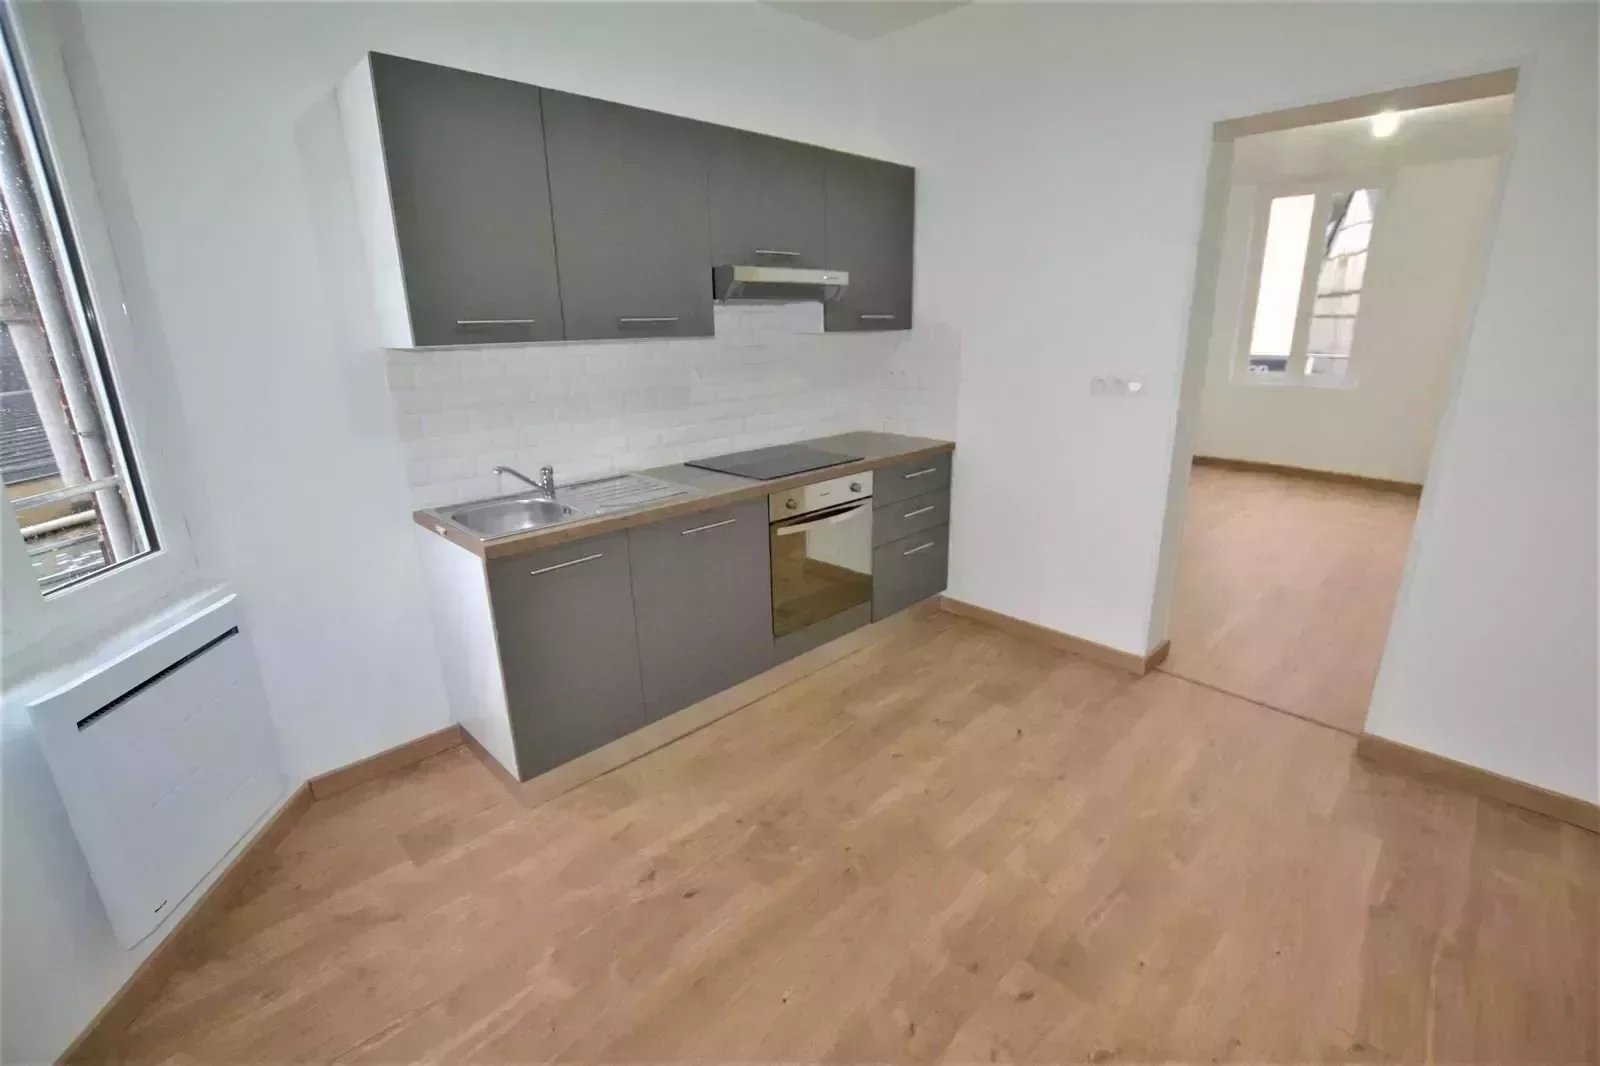 A vendre Bel Appartement F4 au centre ville de  Pavilly